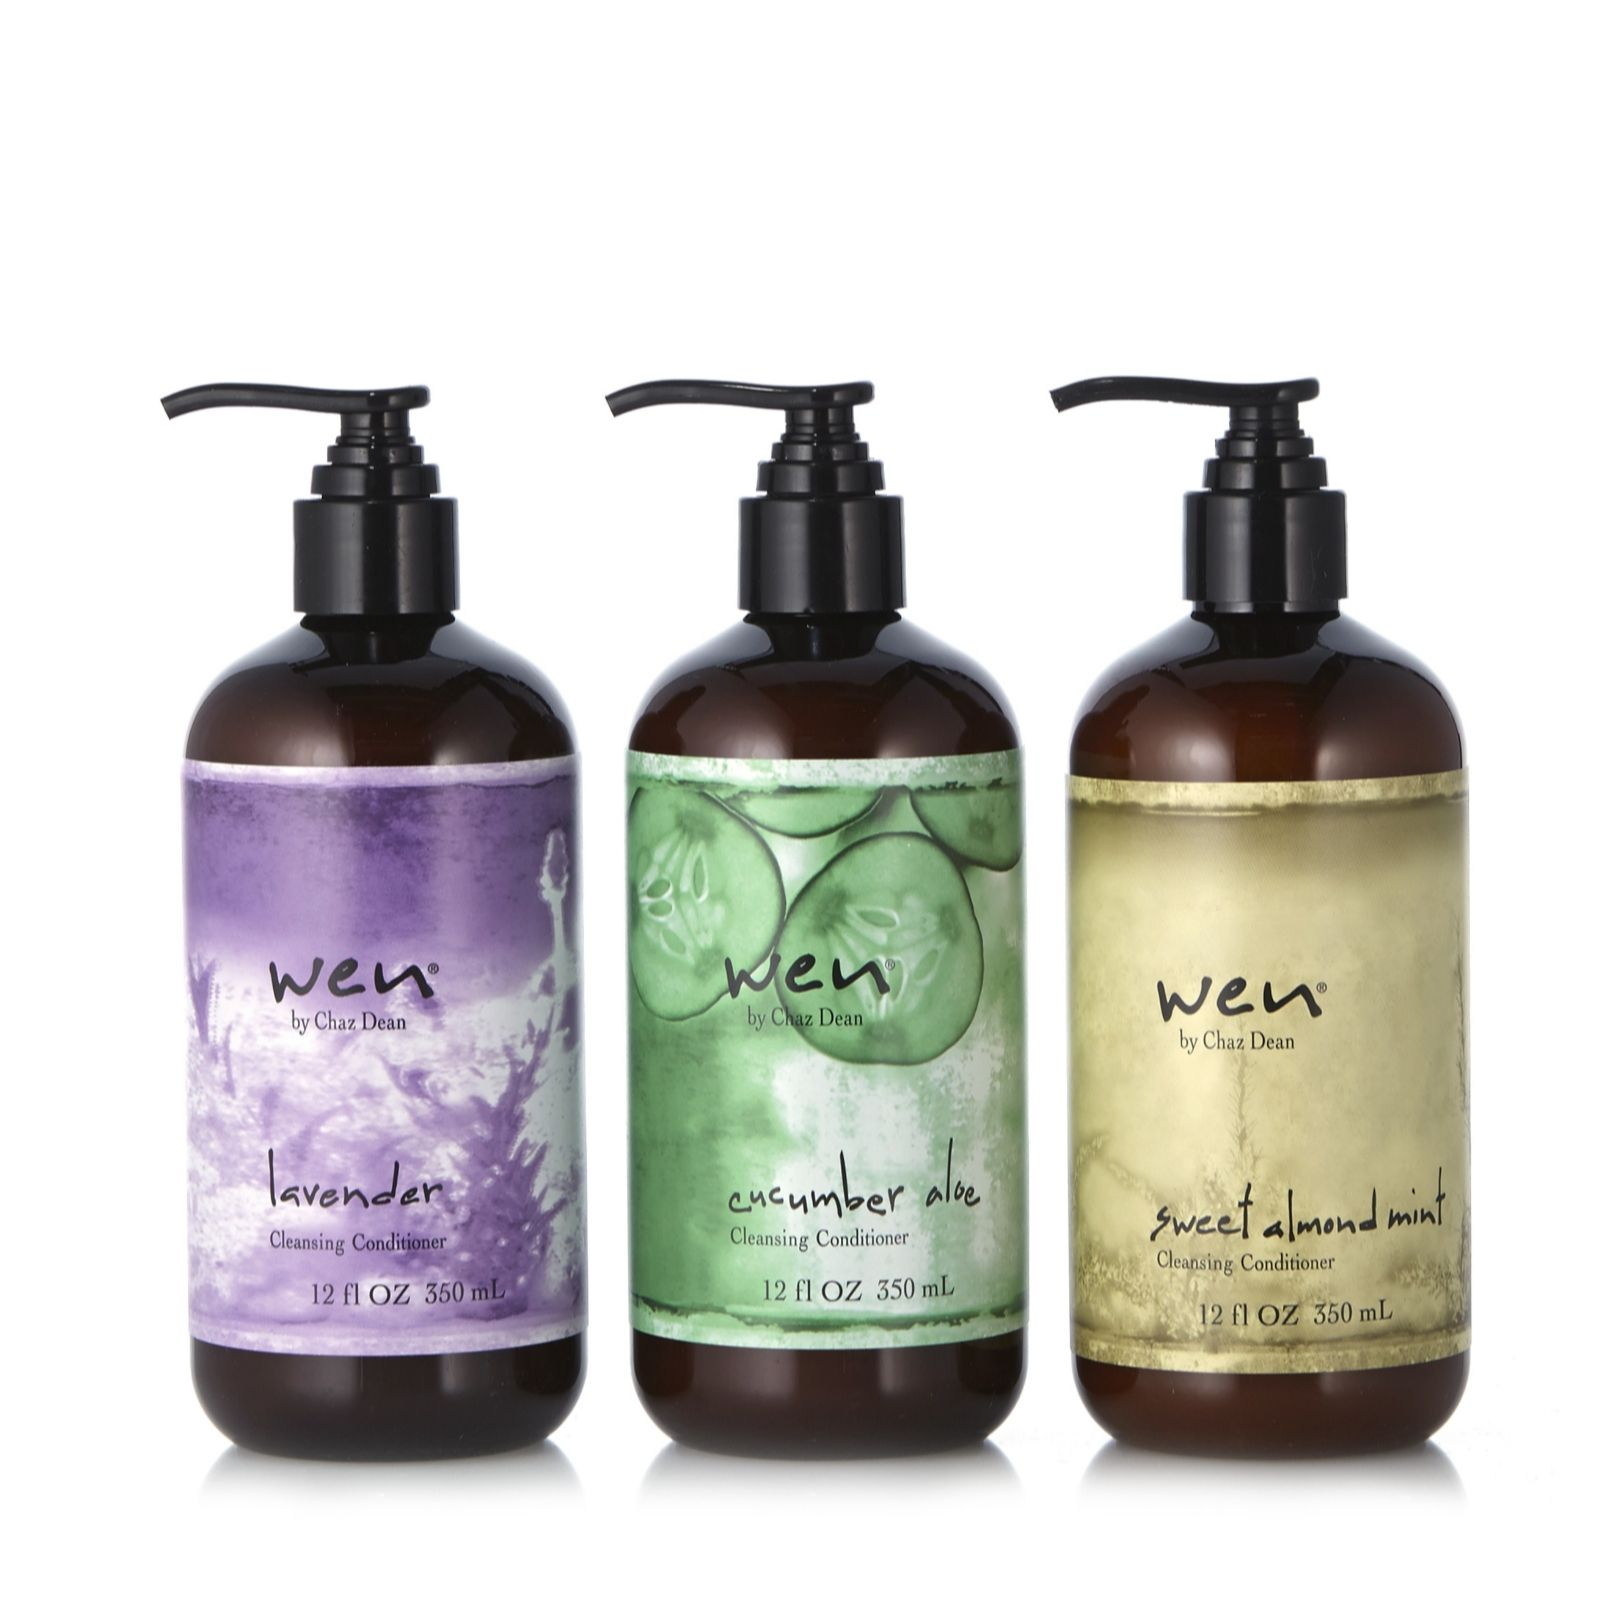 WEN by Chaz Dean Cleansing Conditioner Trio 350ml - 204667